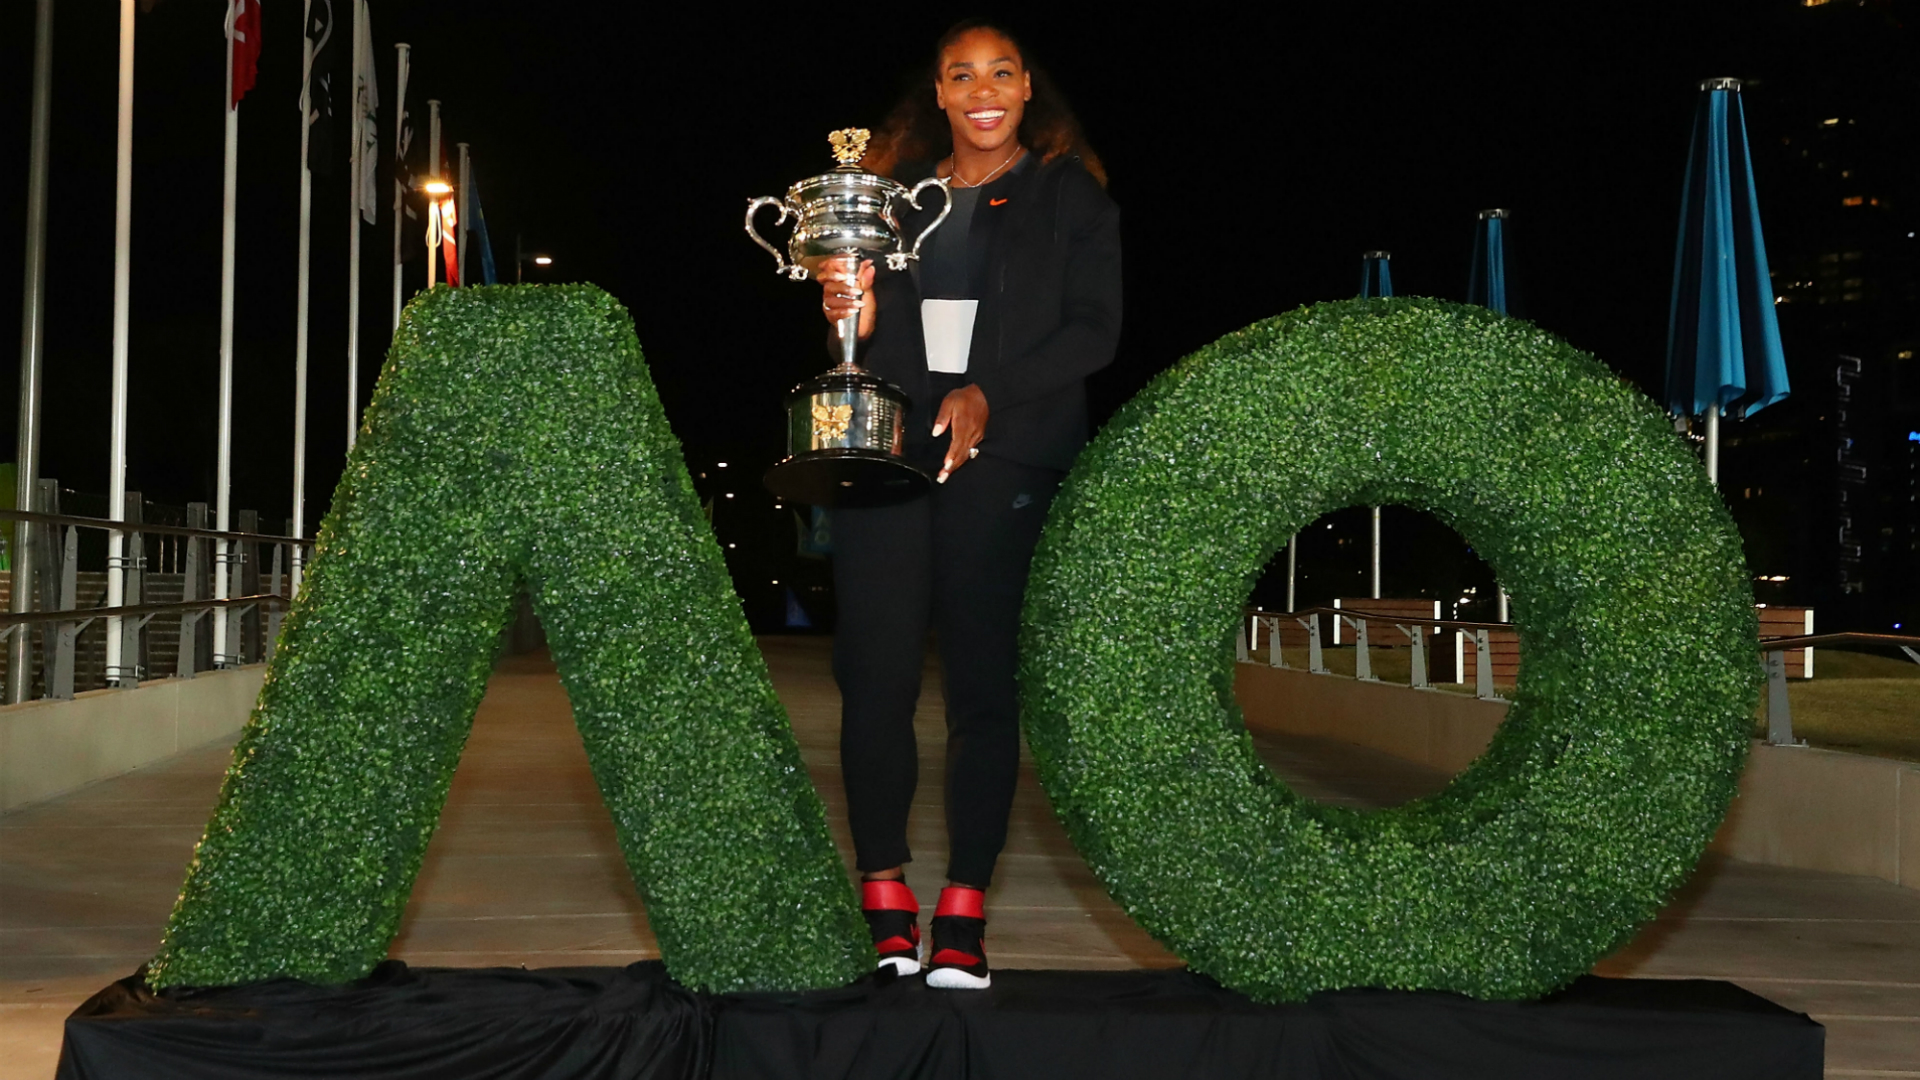 Aussie Open Hopes To Have Serena Back to Defend Title